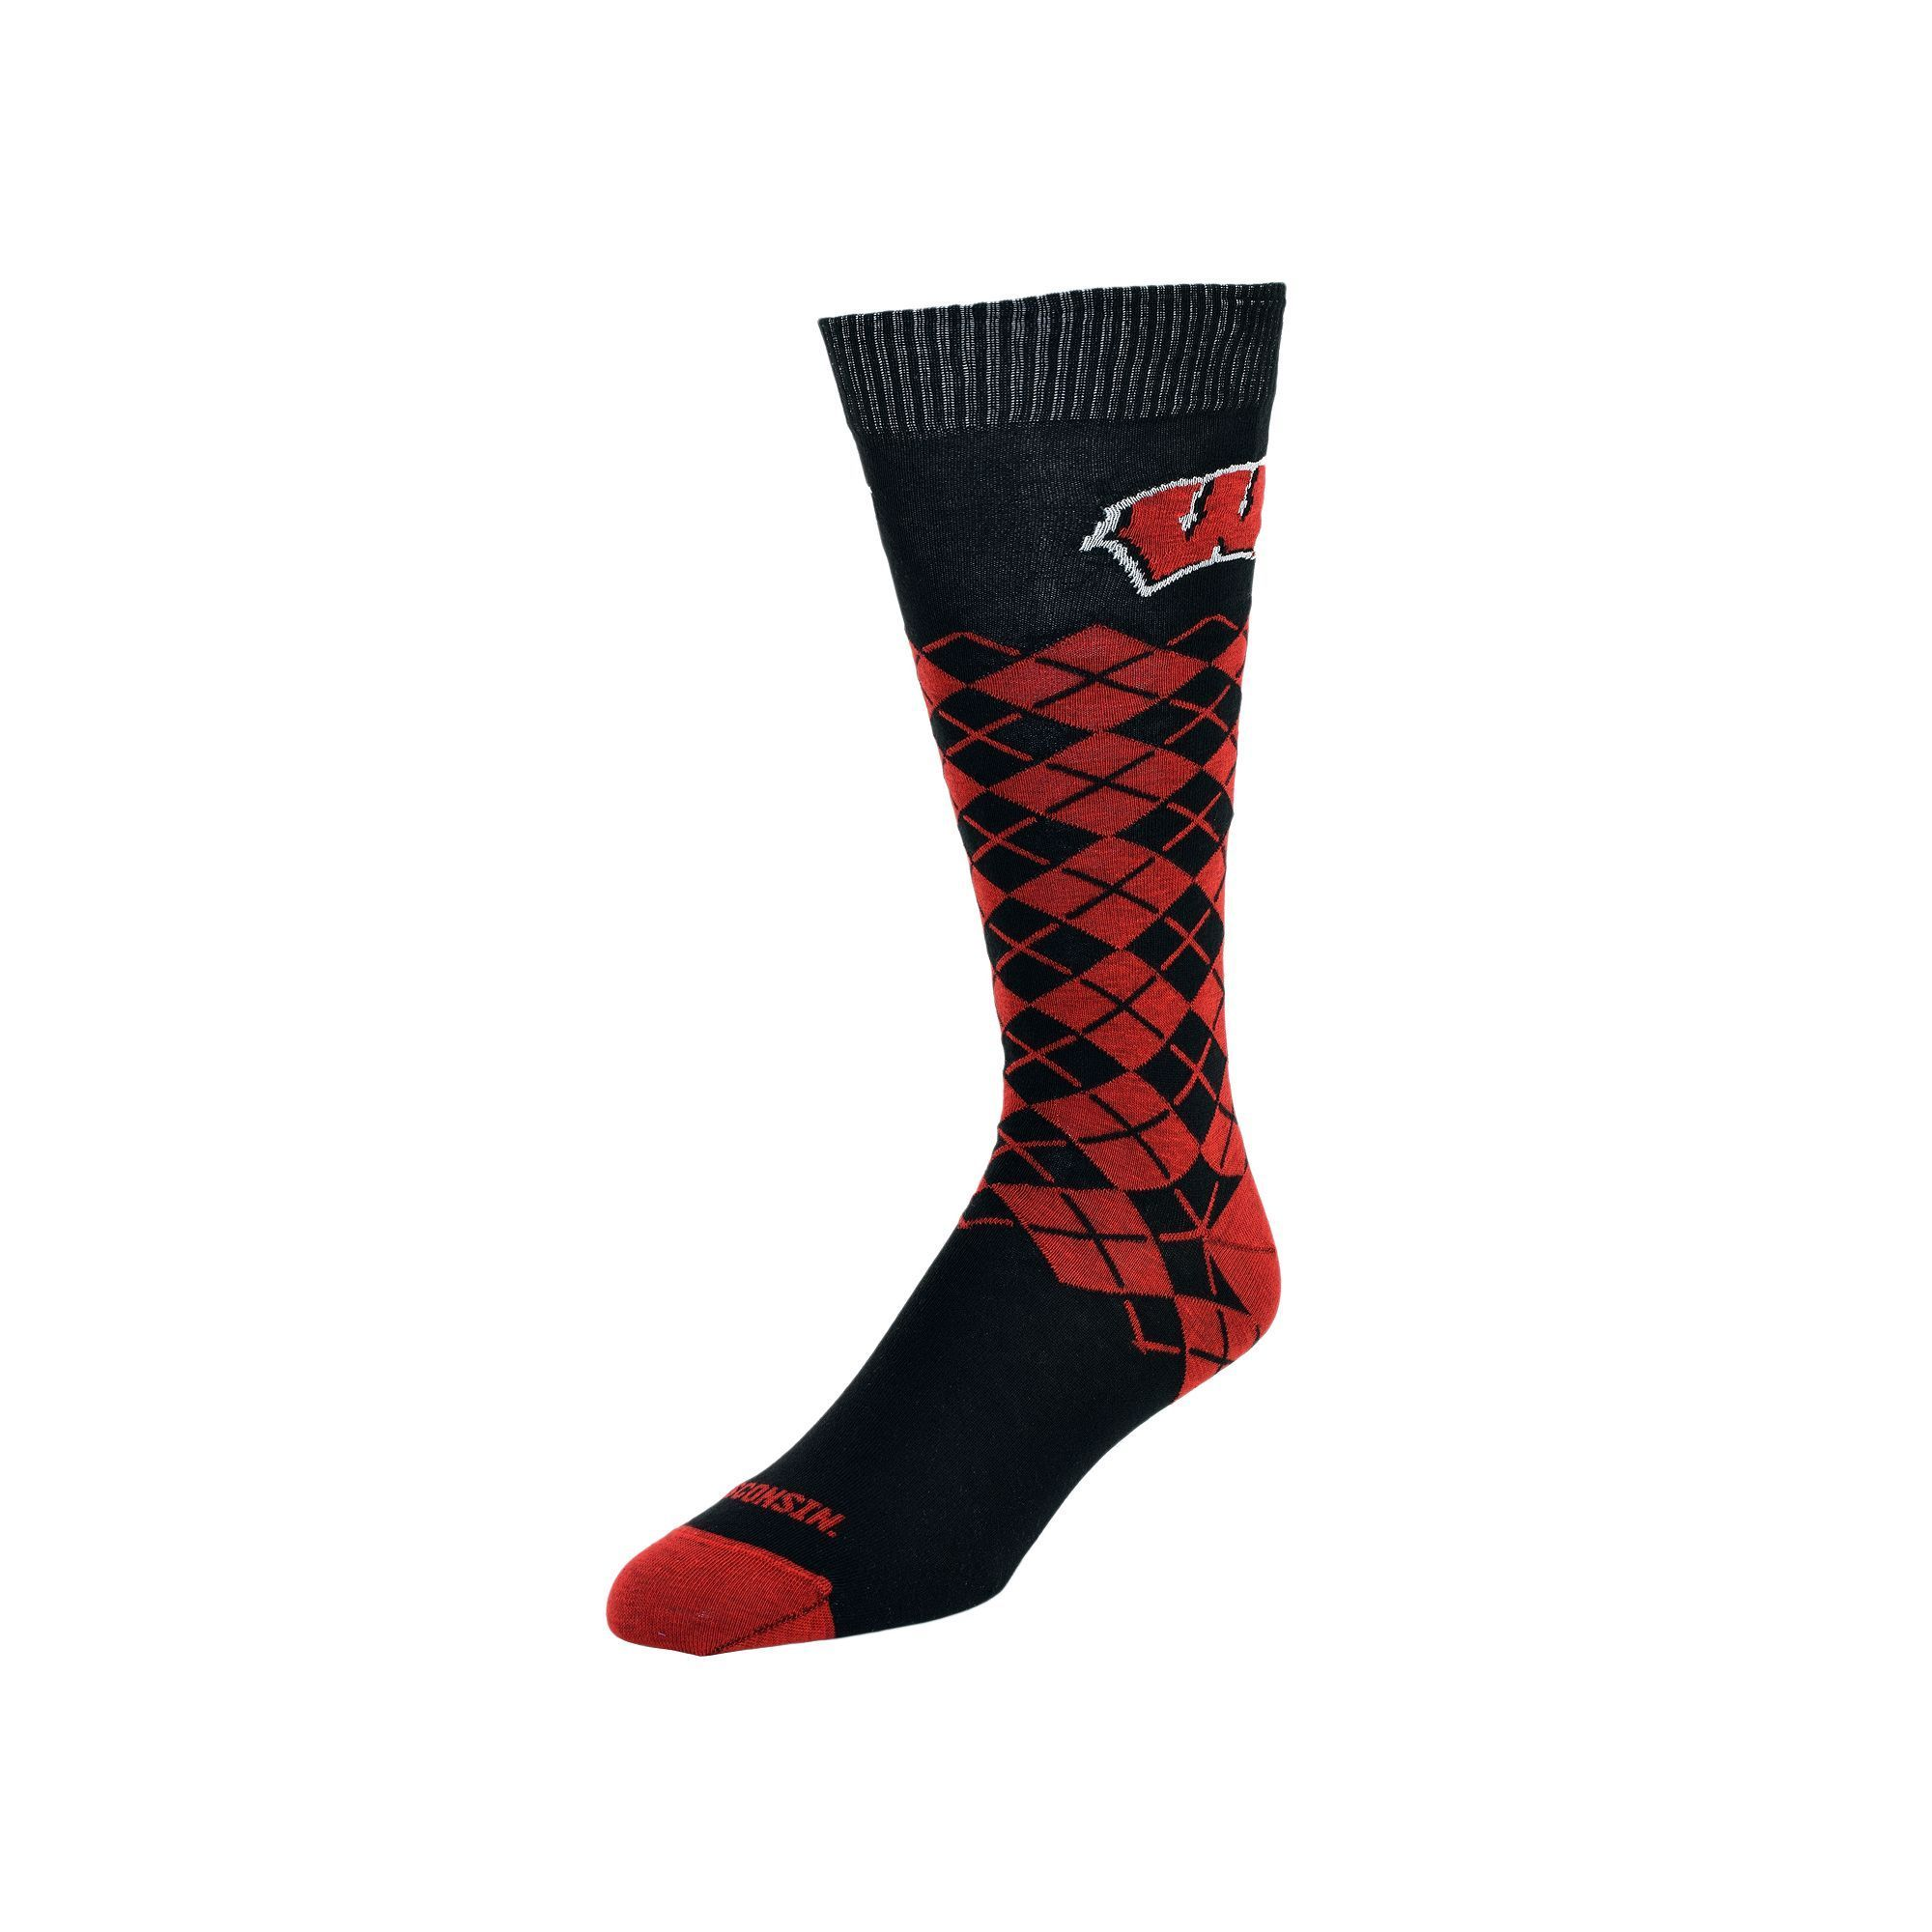 168b16b51 Women s Mojo Wisconsin Badgers Argyle Socks